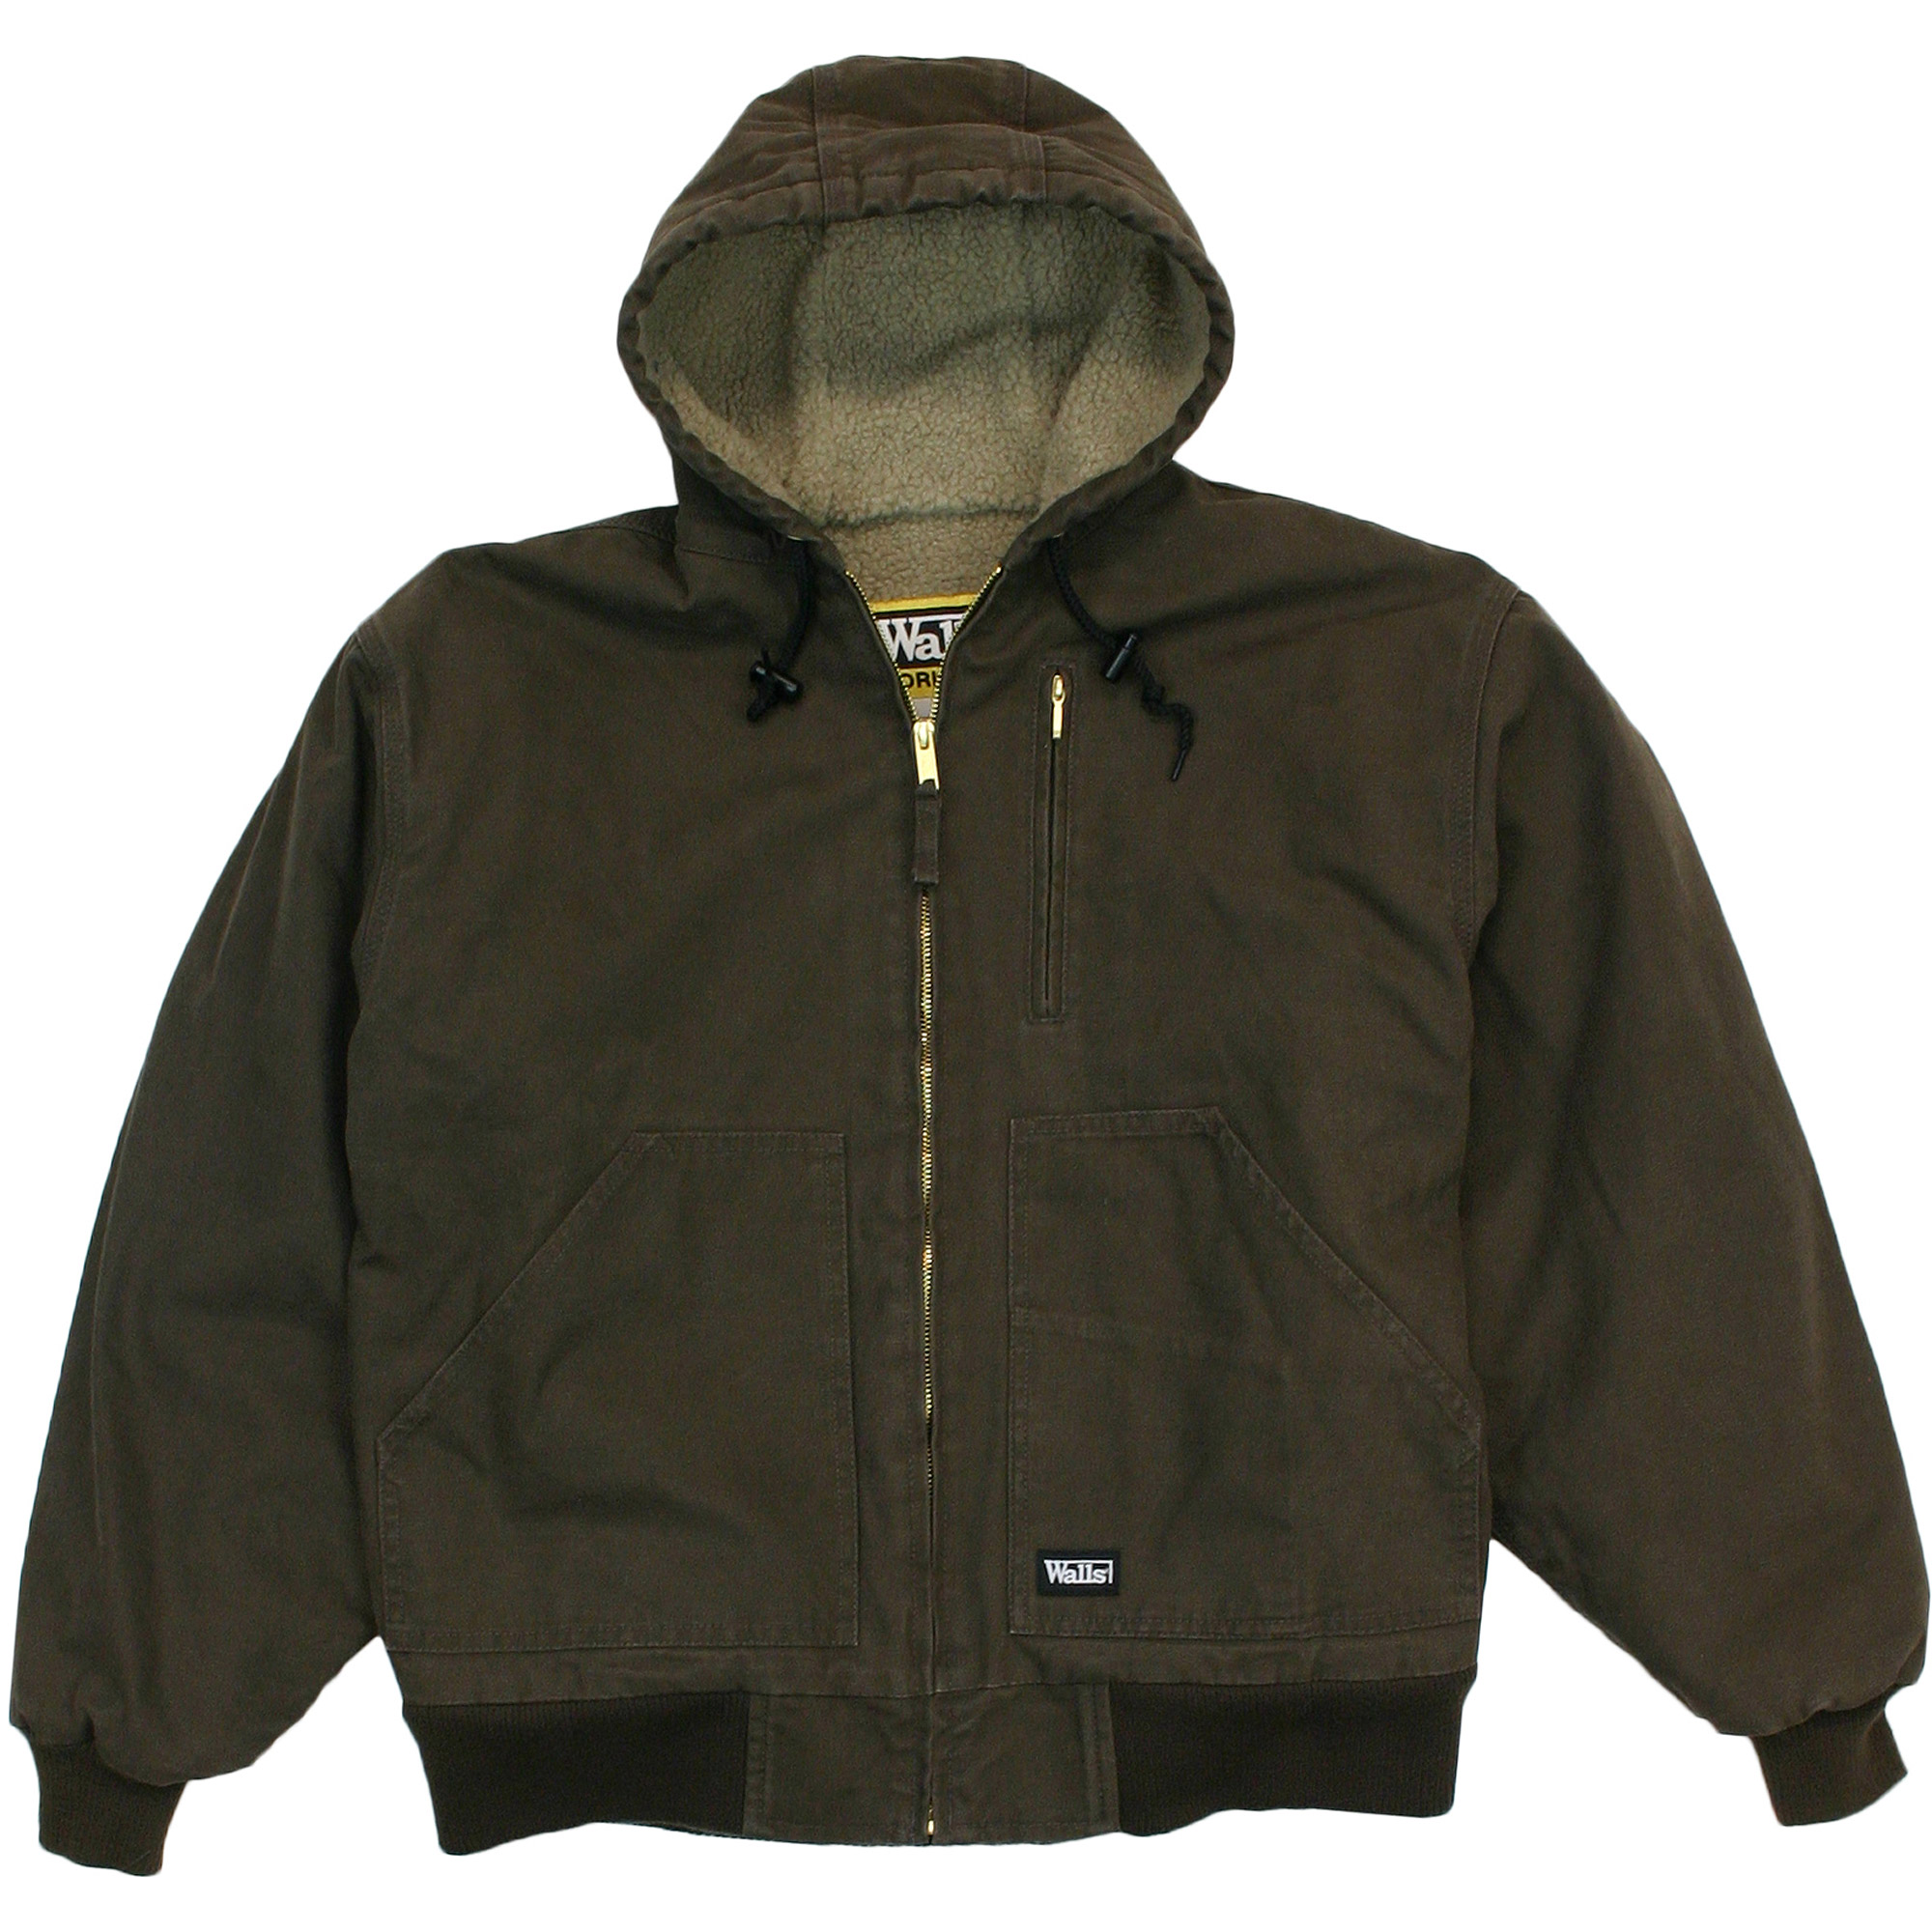 Walls Big Men's Washed Duck Sherpa Lined Hooded Jacket